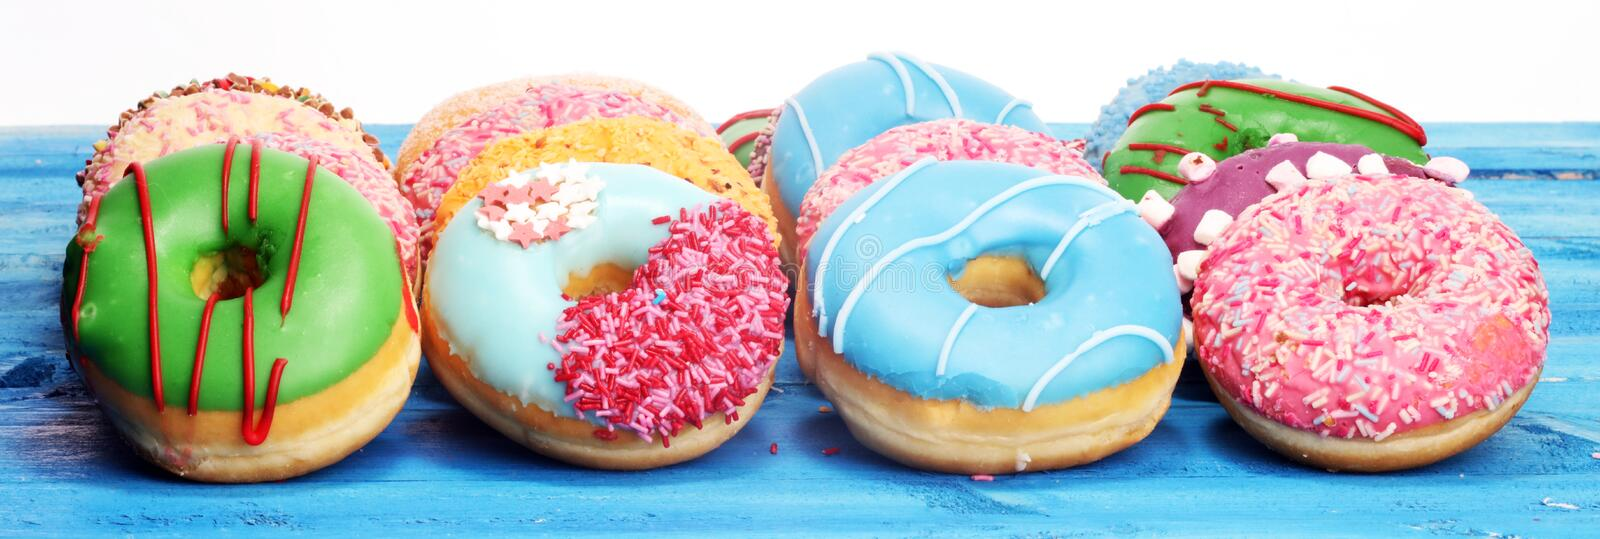 Assorted donuts with chocolate frosted, pink glazed and sprinkles donuts. on table royalty free stock photo